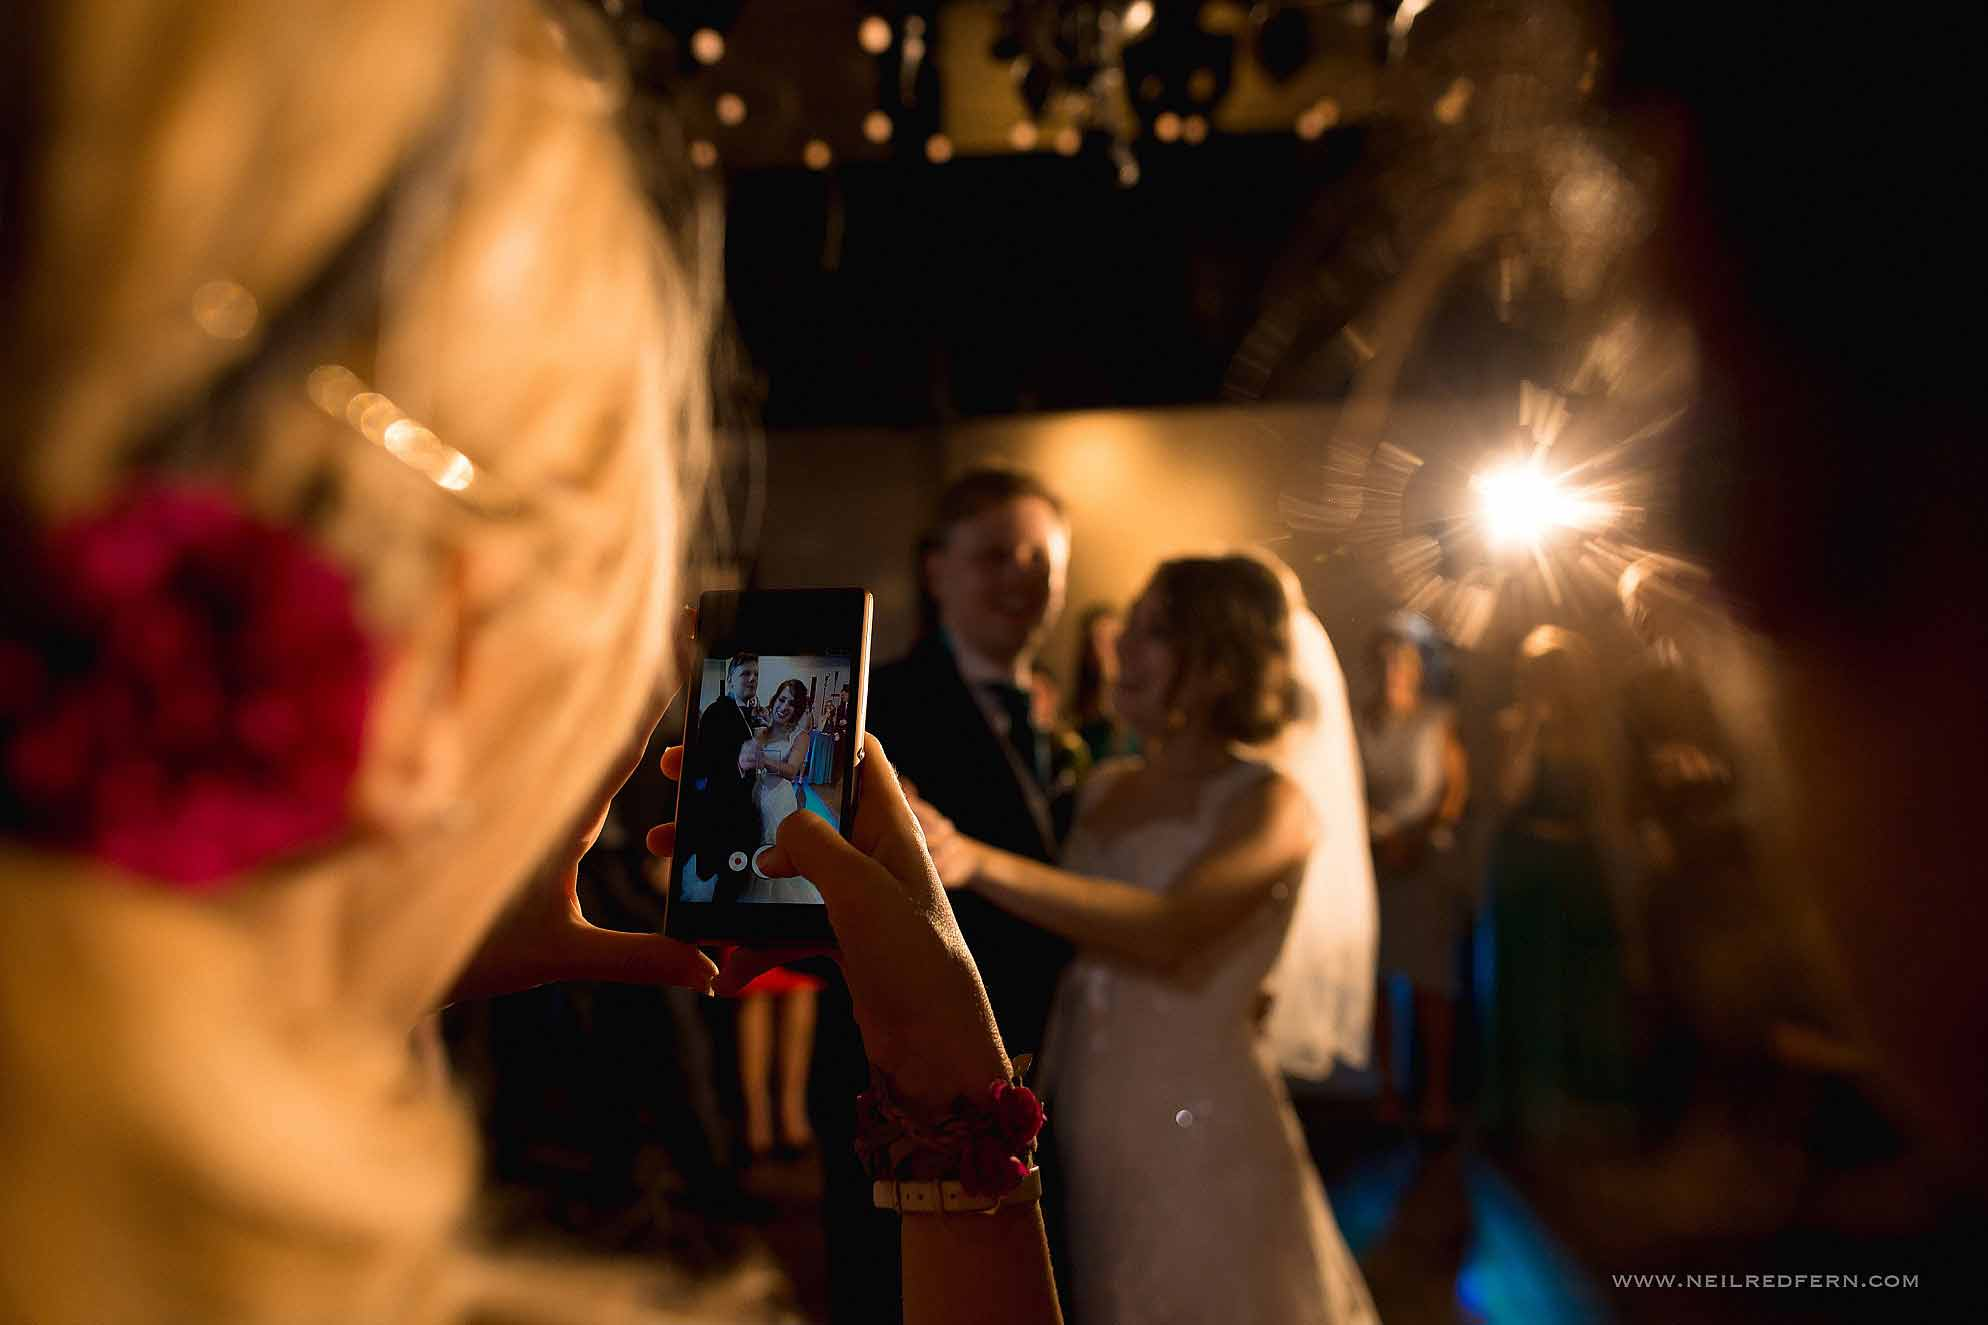 guest filming first dance on phone